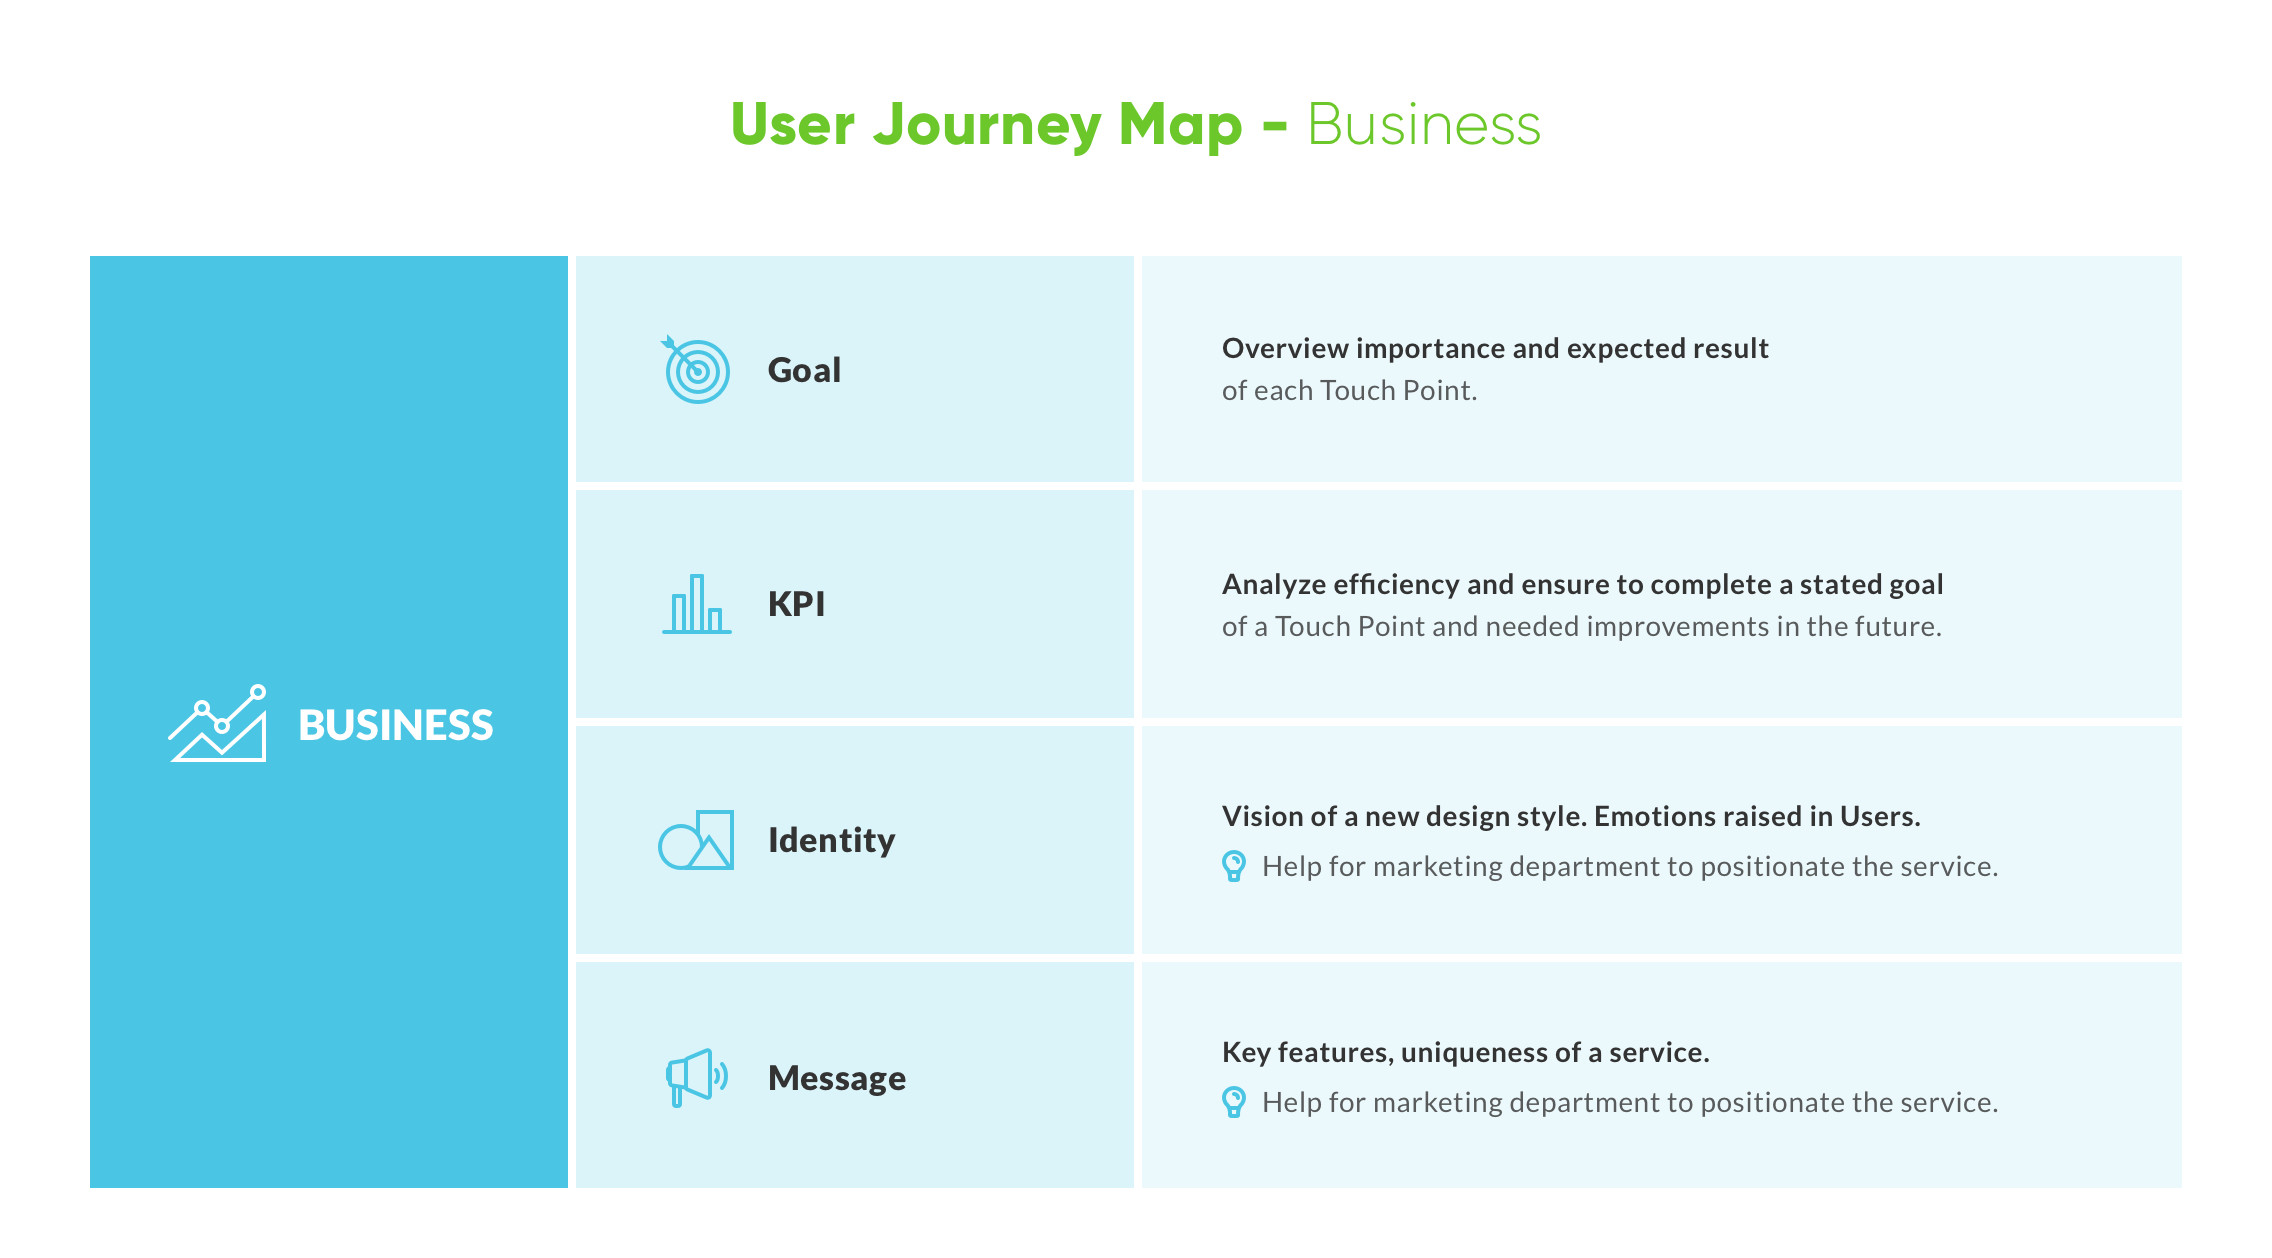 user-journey-mapping-uxda-work-process-ux-design.jpg-L-3.jpg